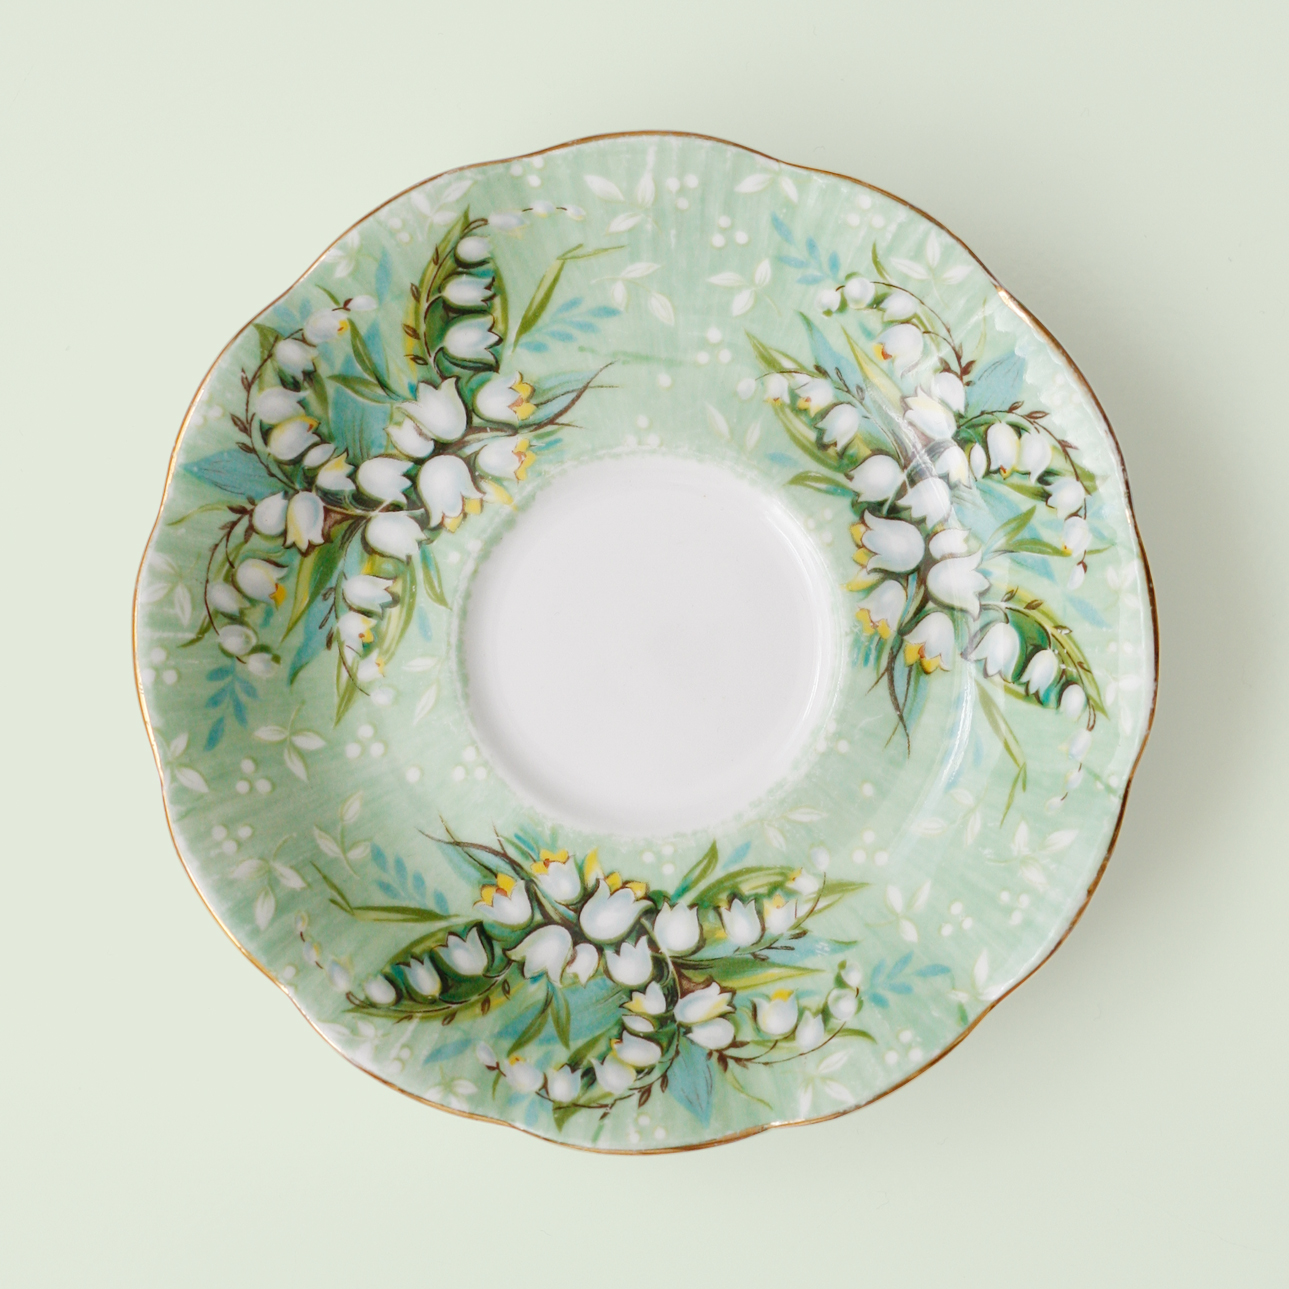 02_Paige Smith_Saucer 1